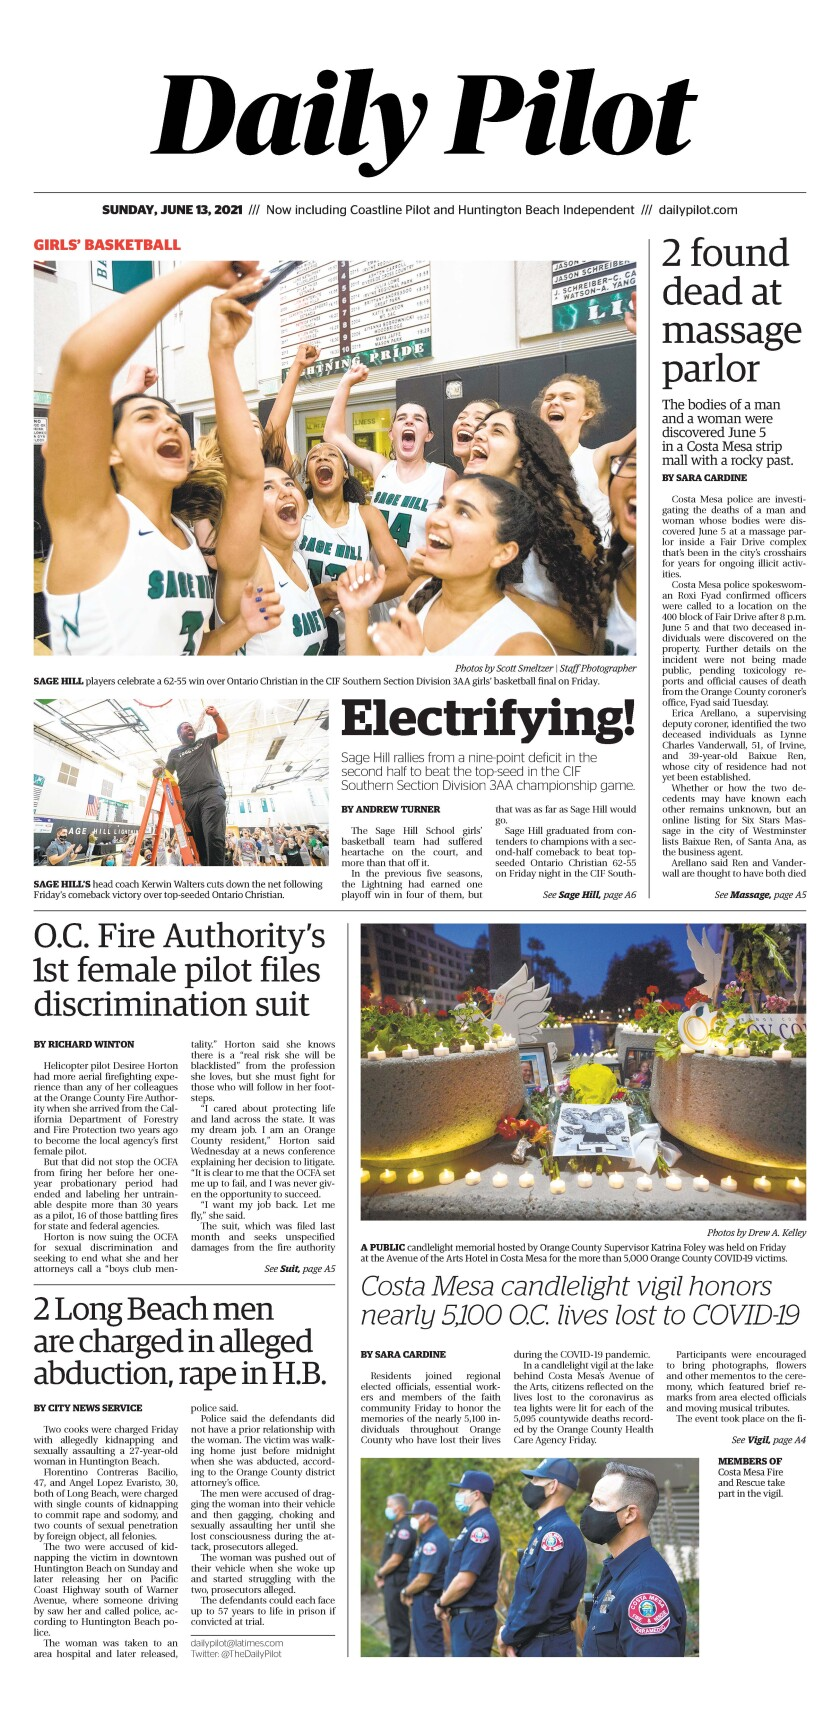 Front page of Daily Pilot e-newspaper for Sunday, June 13, 2021.